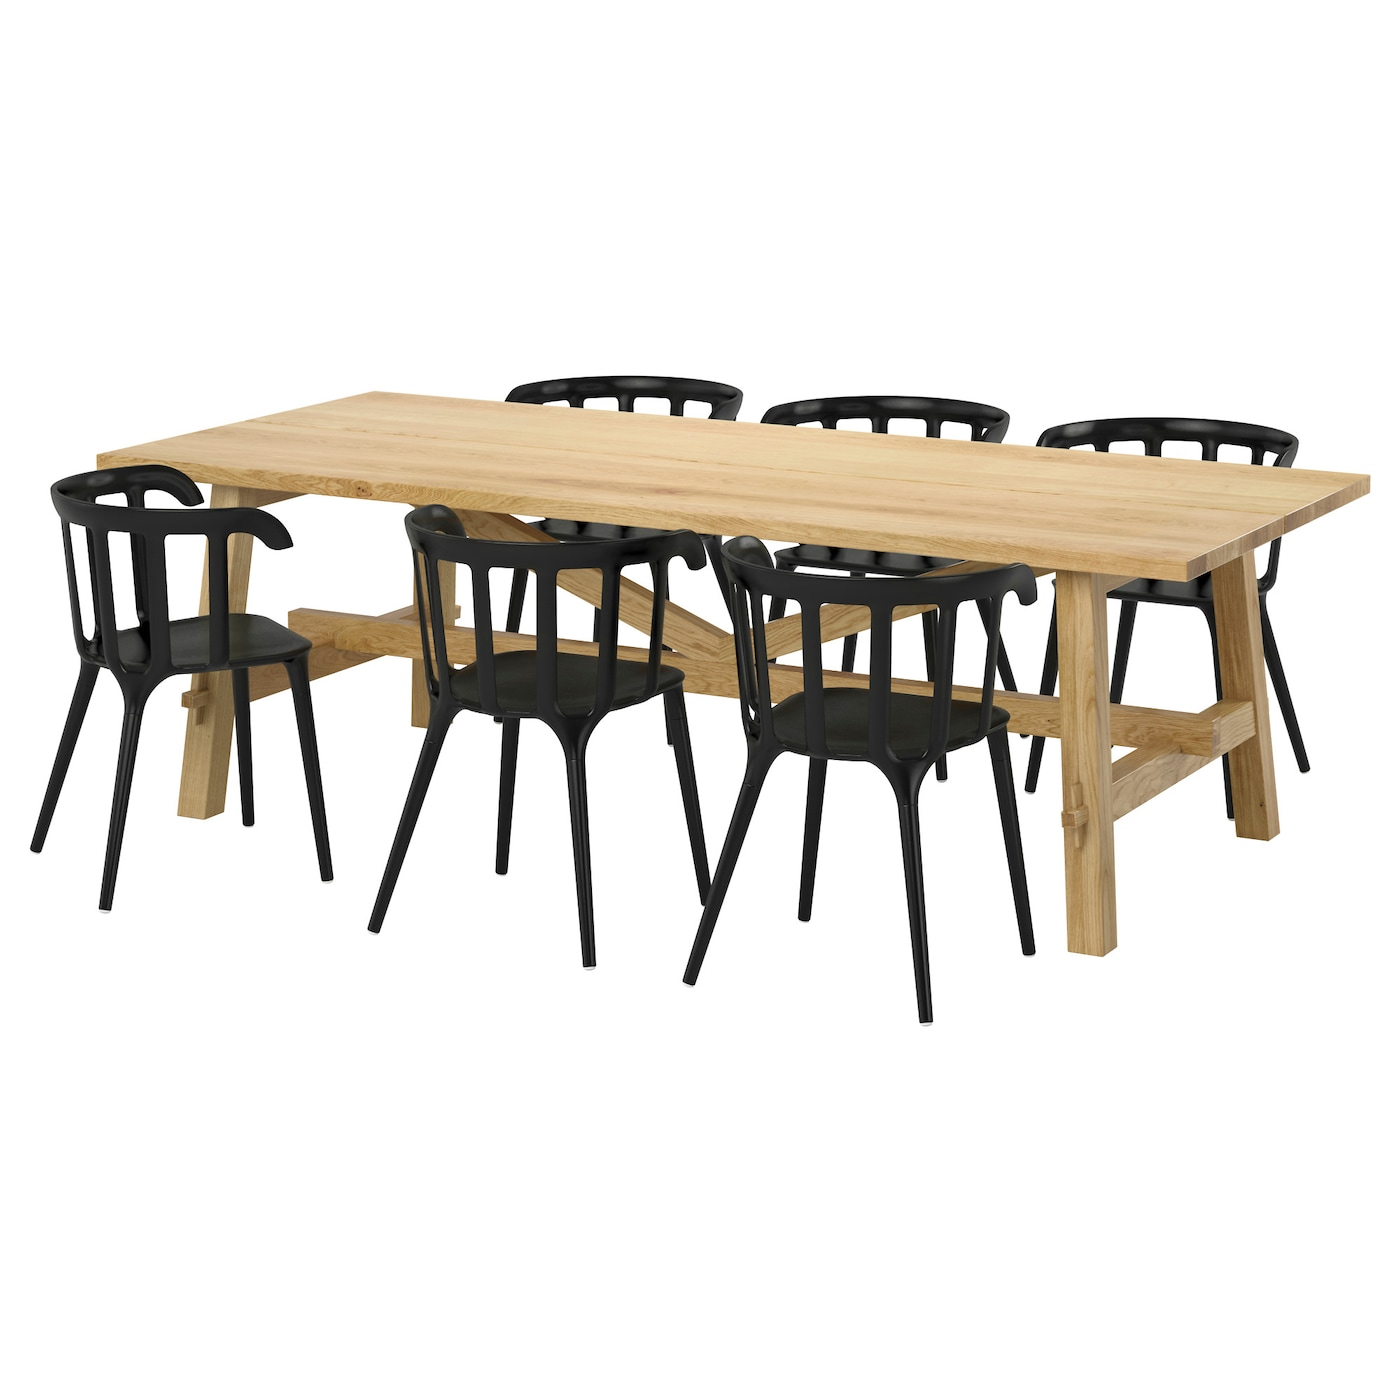 ikea ps 2012 m ckelby table et 6 chaises ch ne noir 235x100 cm ikea. Black Bedroom Furniture Sets. Home Design Ideas